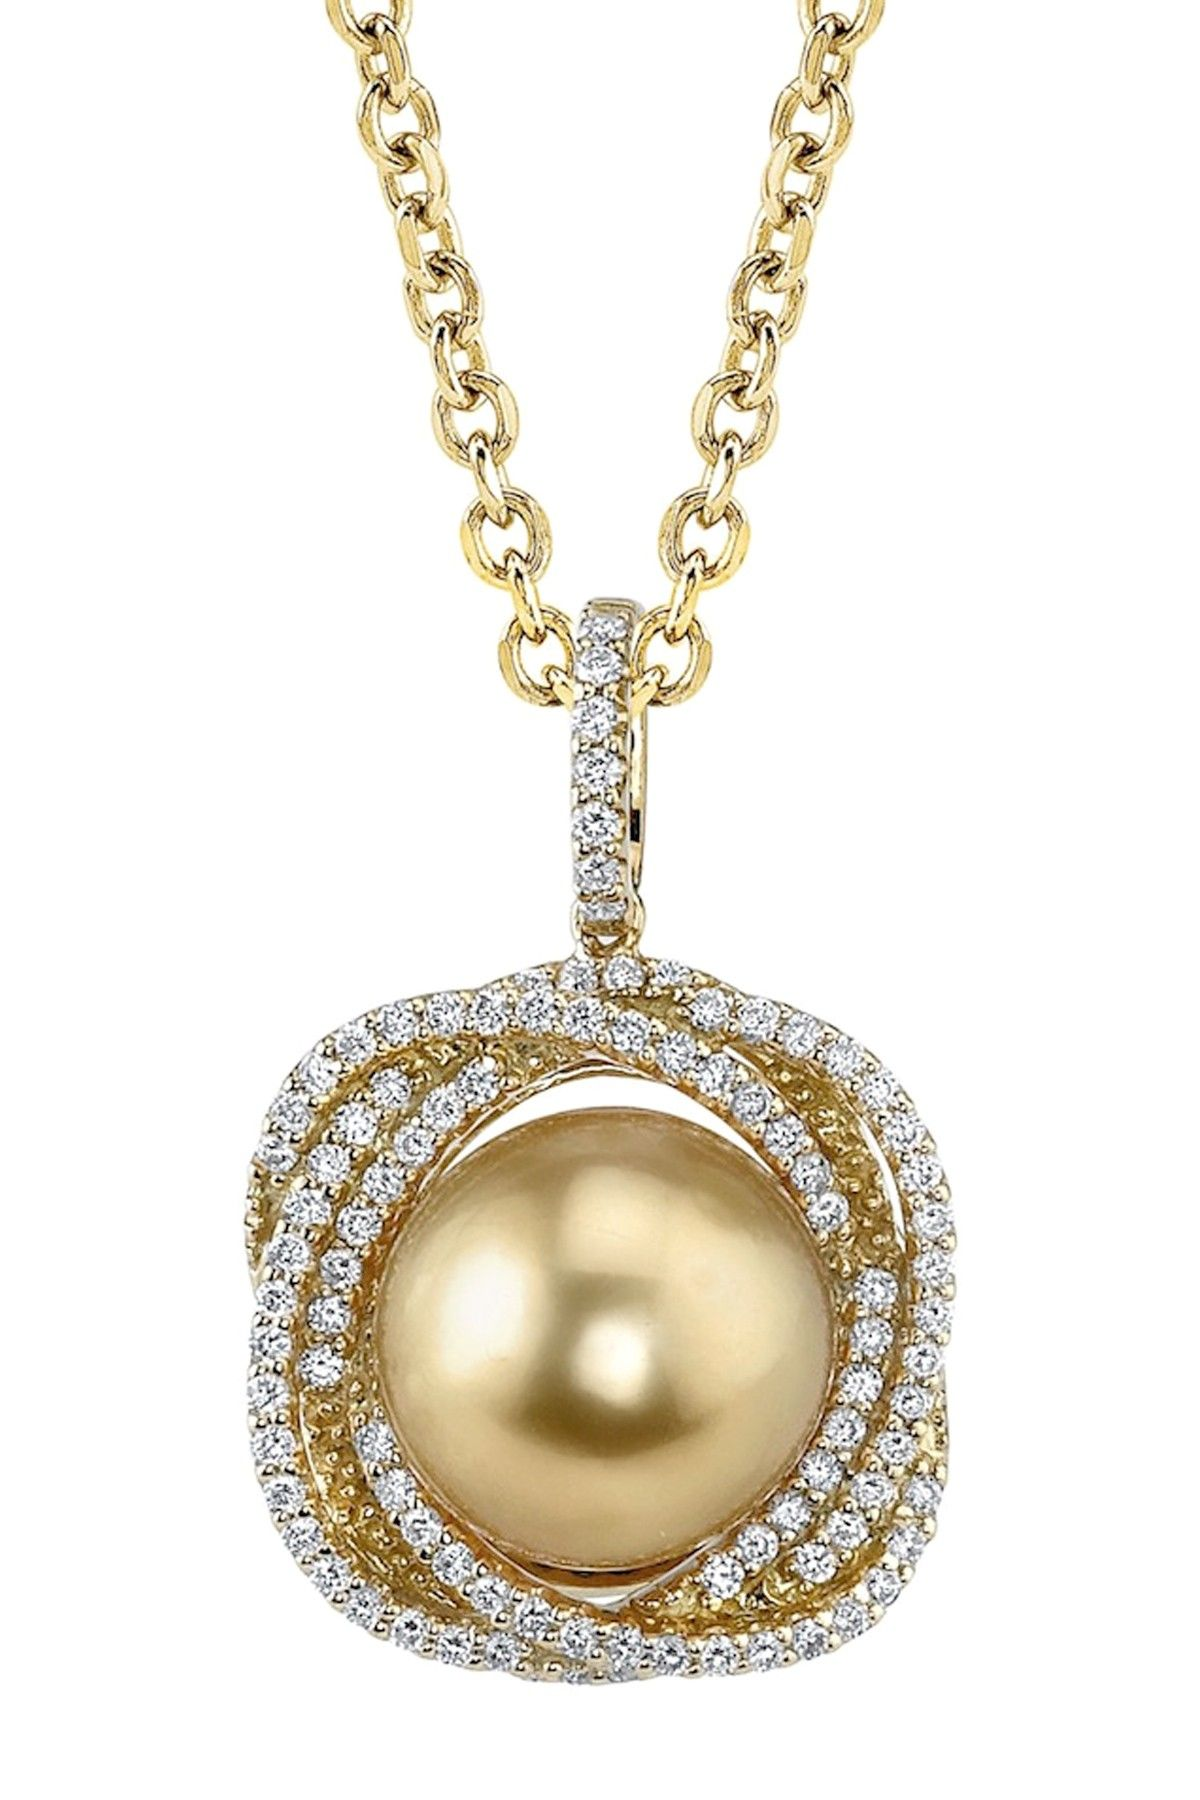 88b8f848995f Mikimoto Radiance Pearl-14K Yellow Gold 11mm Golden South Sea Pearl    Diamond Braided Pendant Necklace